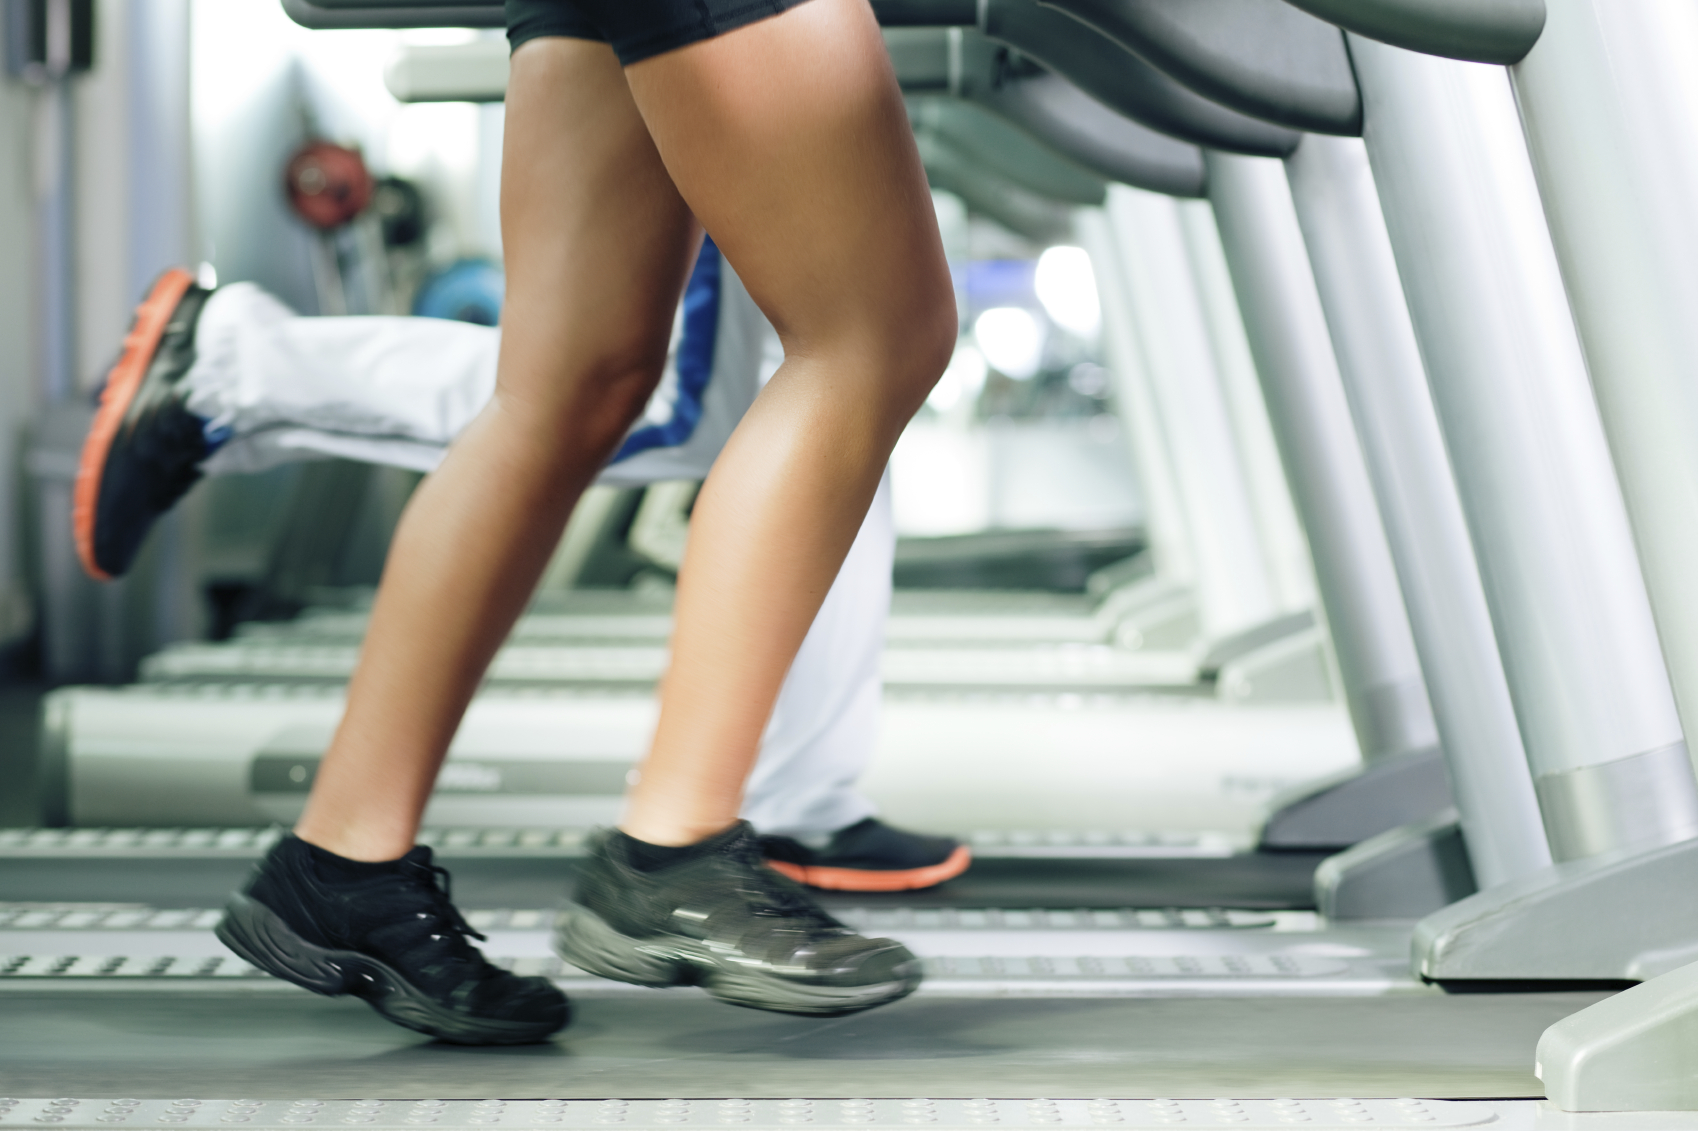 Exercise machines often inflate the number of calories you burn while using them, a new study shows. Here's how to know what you really burned…